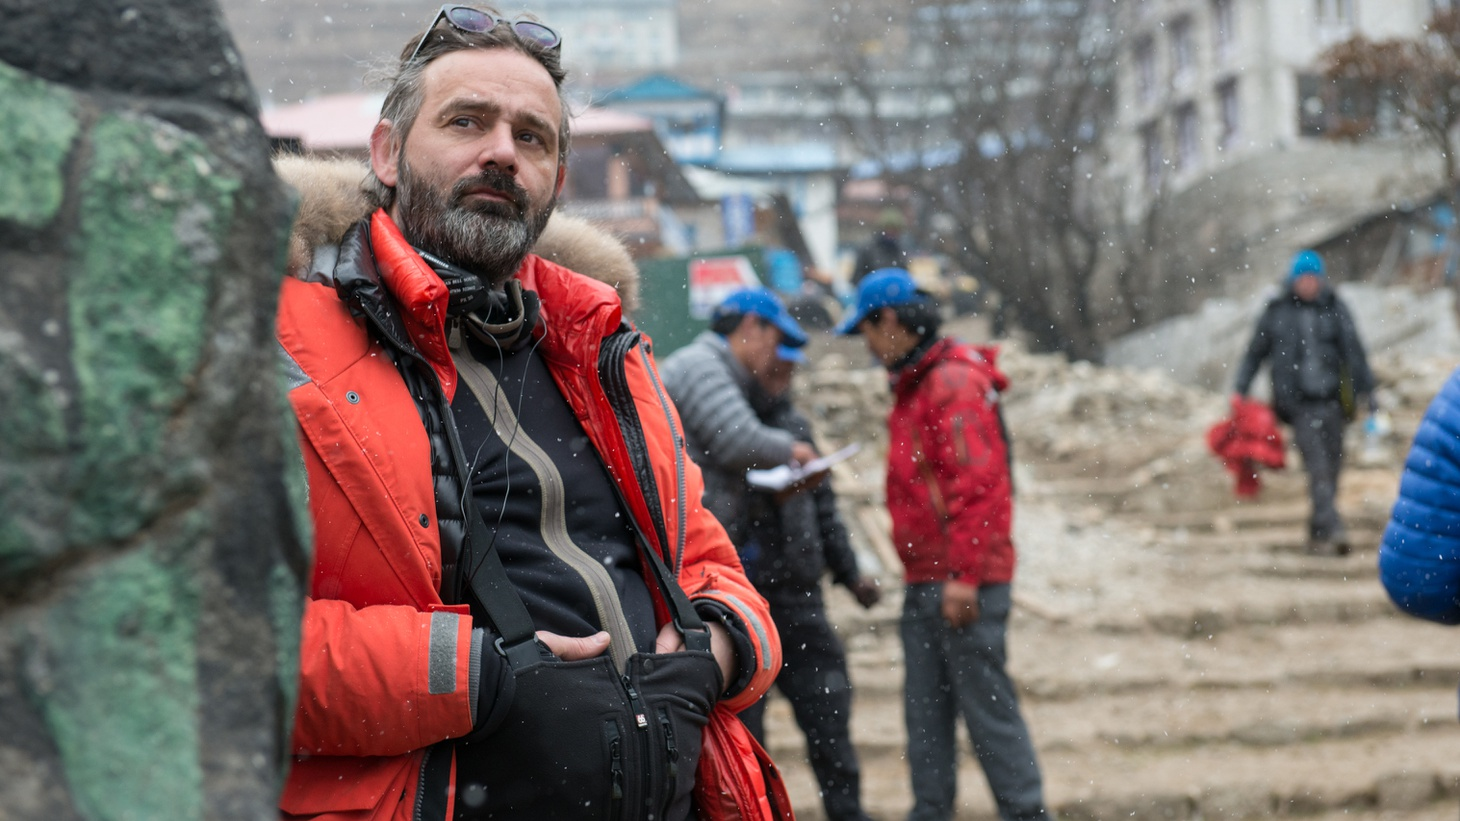 Director Baltsar Kormákur discusses working from chaos on the set of Everest.